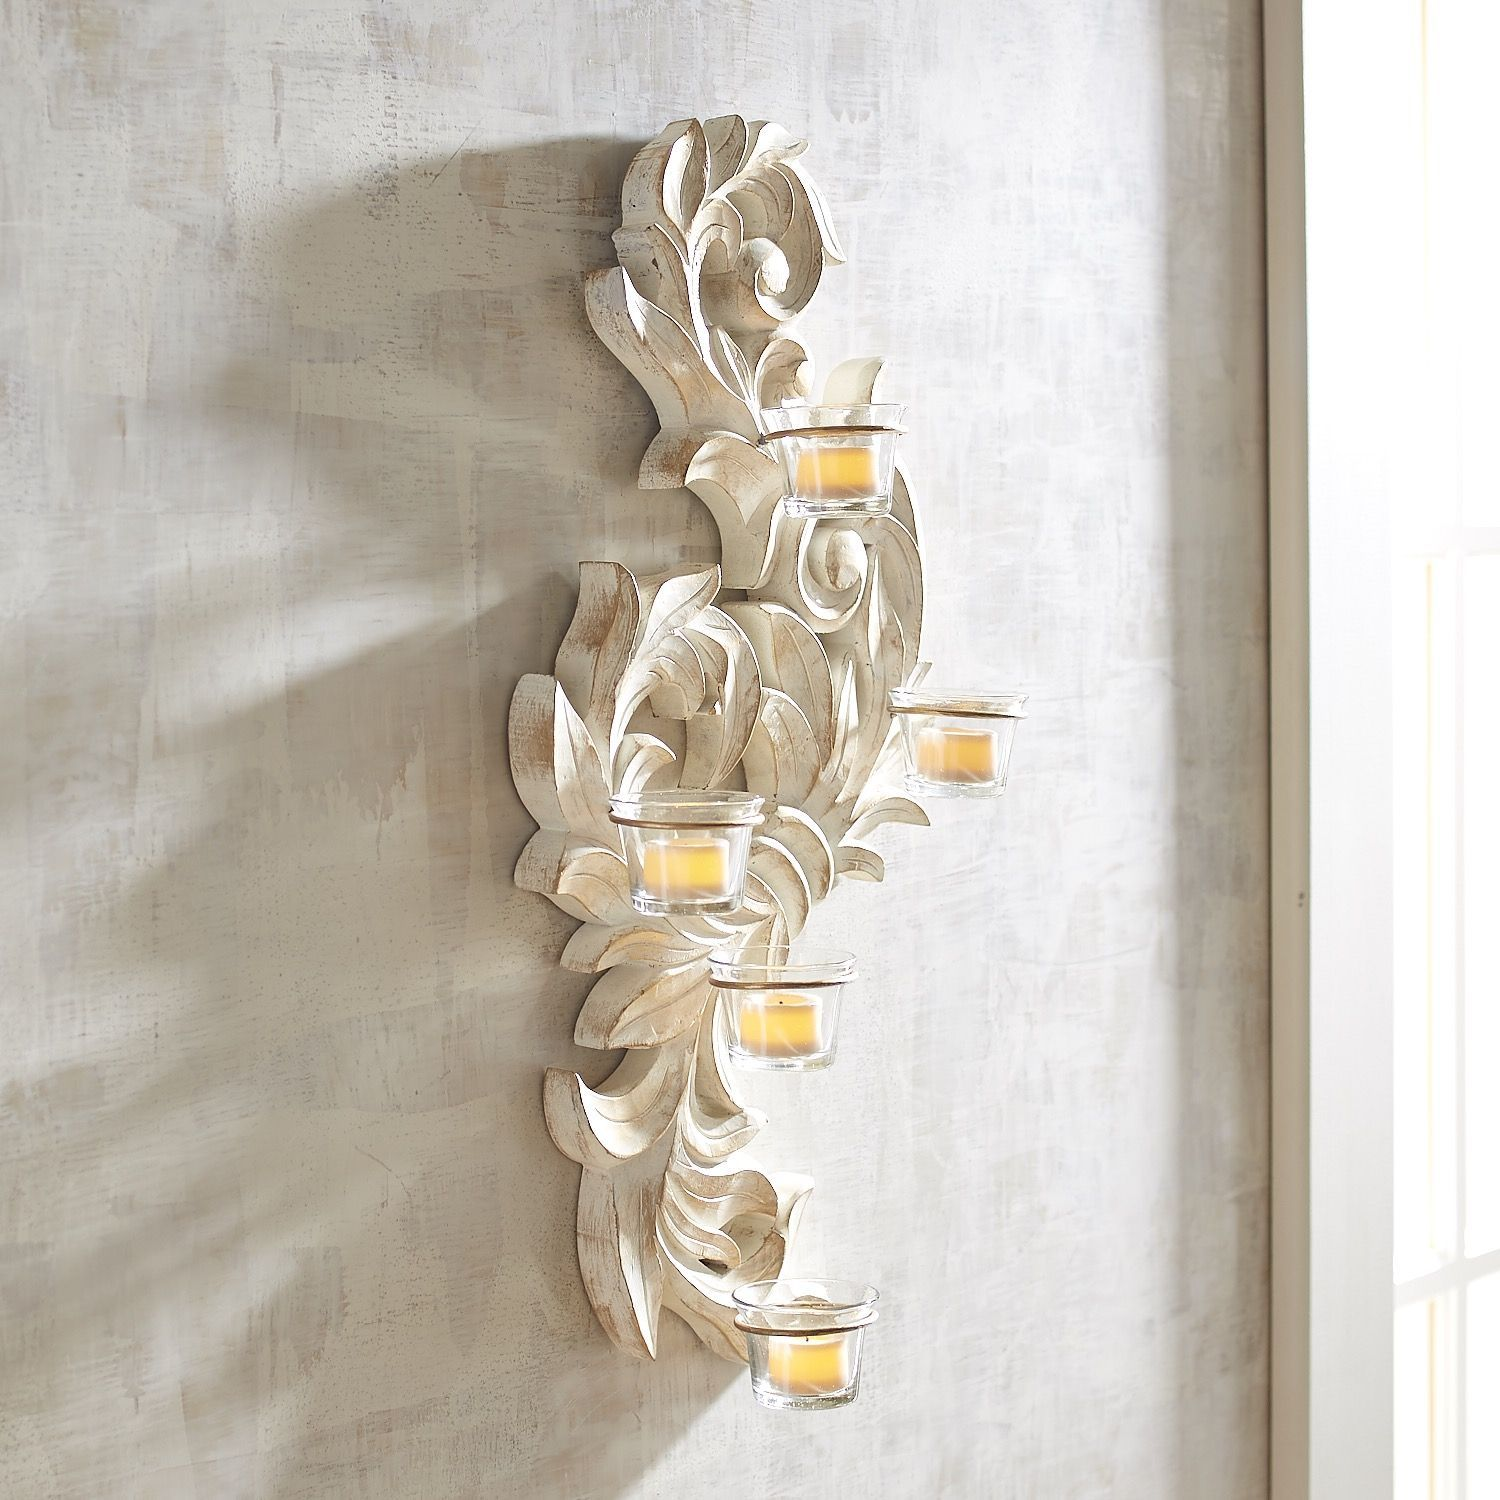 full candle iron sconces candles wood sconce top with wall of elegant view fresh size unique